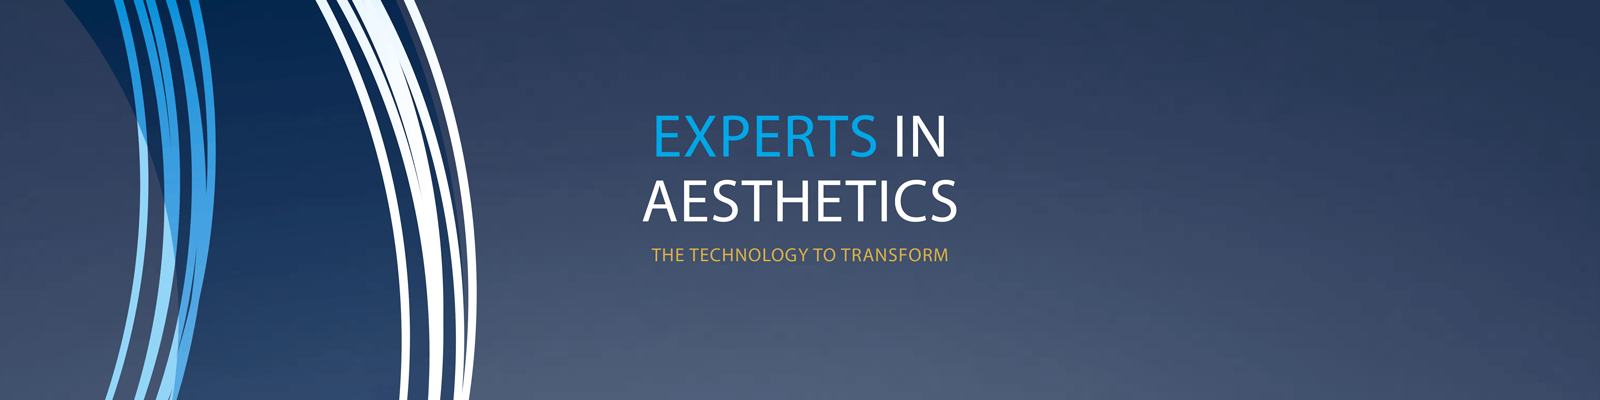 Lynton Lasers Experts in Aesthetics the Technology to Transform